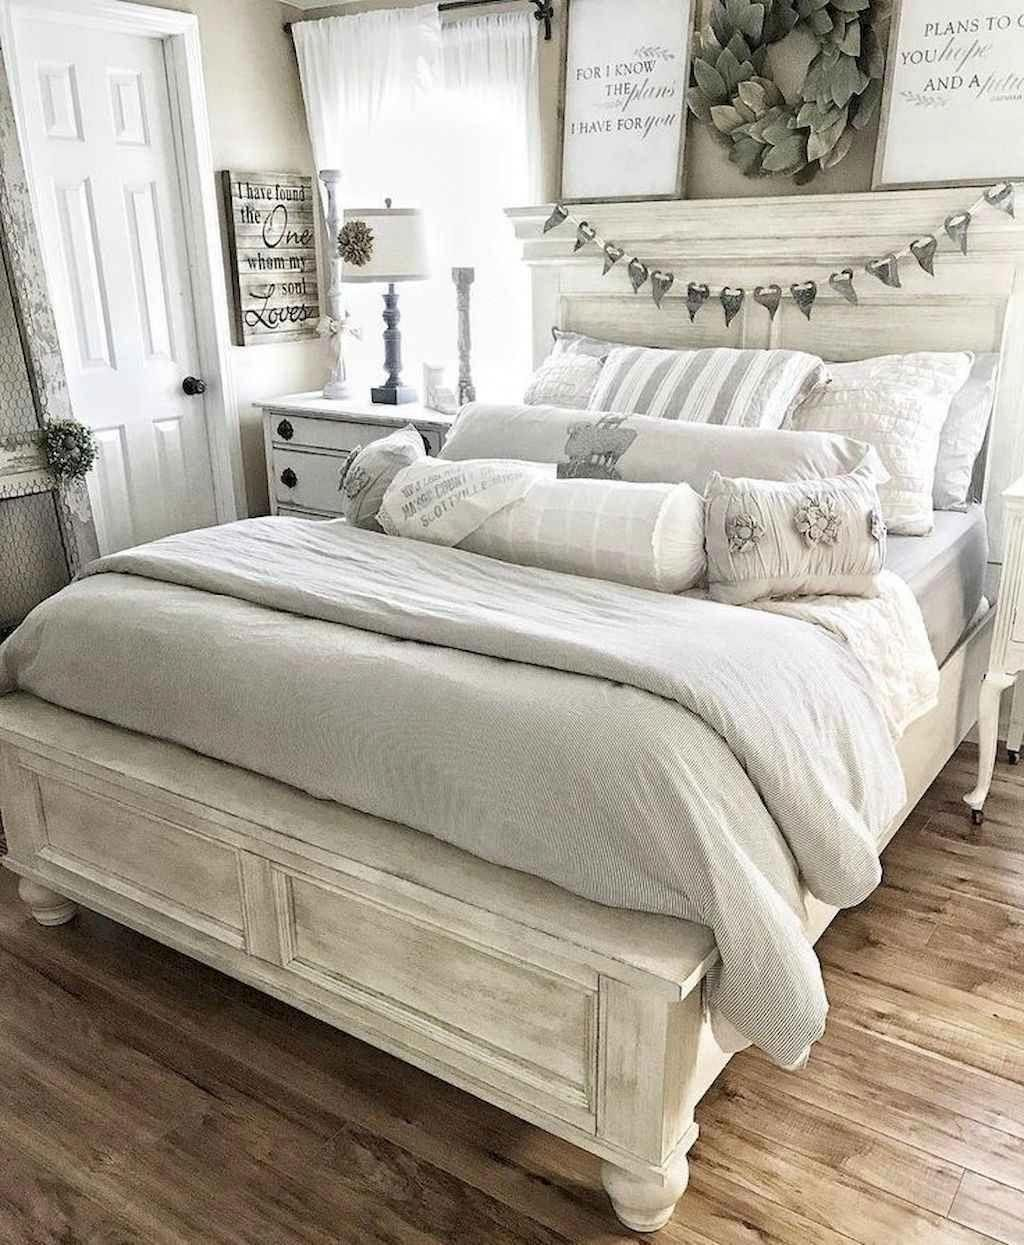 furniture stores in maryland #